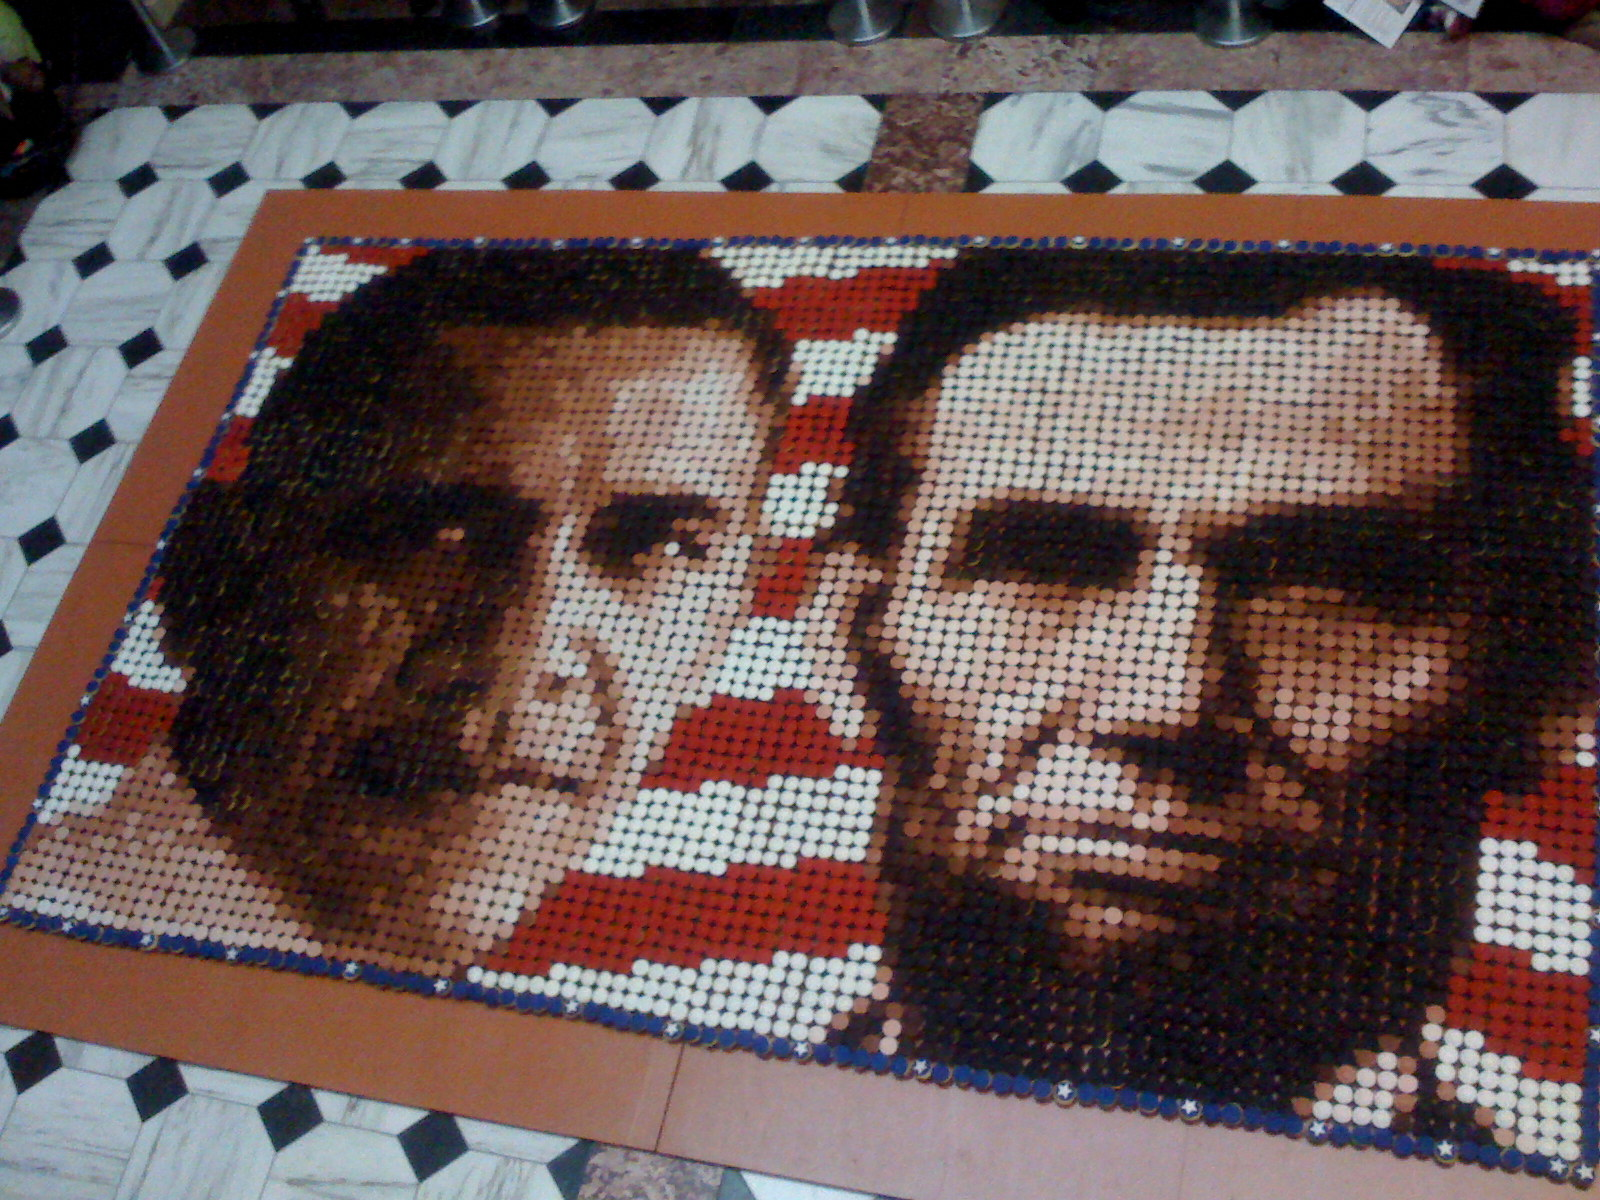 Portraits of Obama and Lincoln, in cupcakes